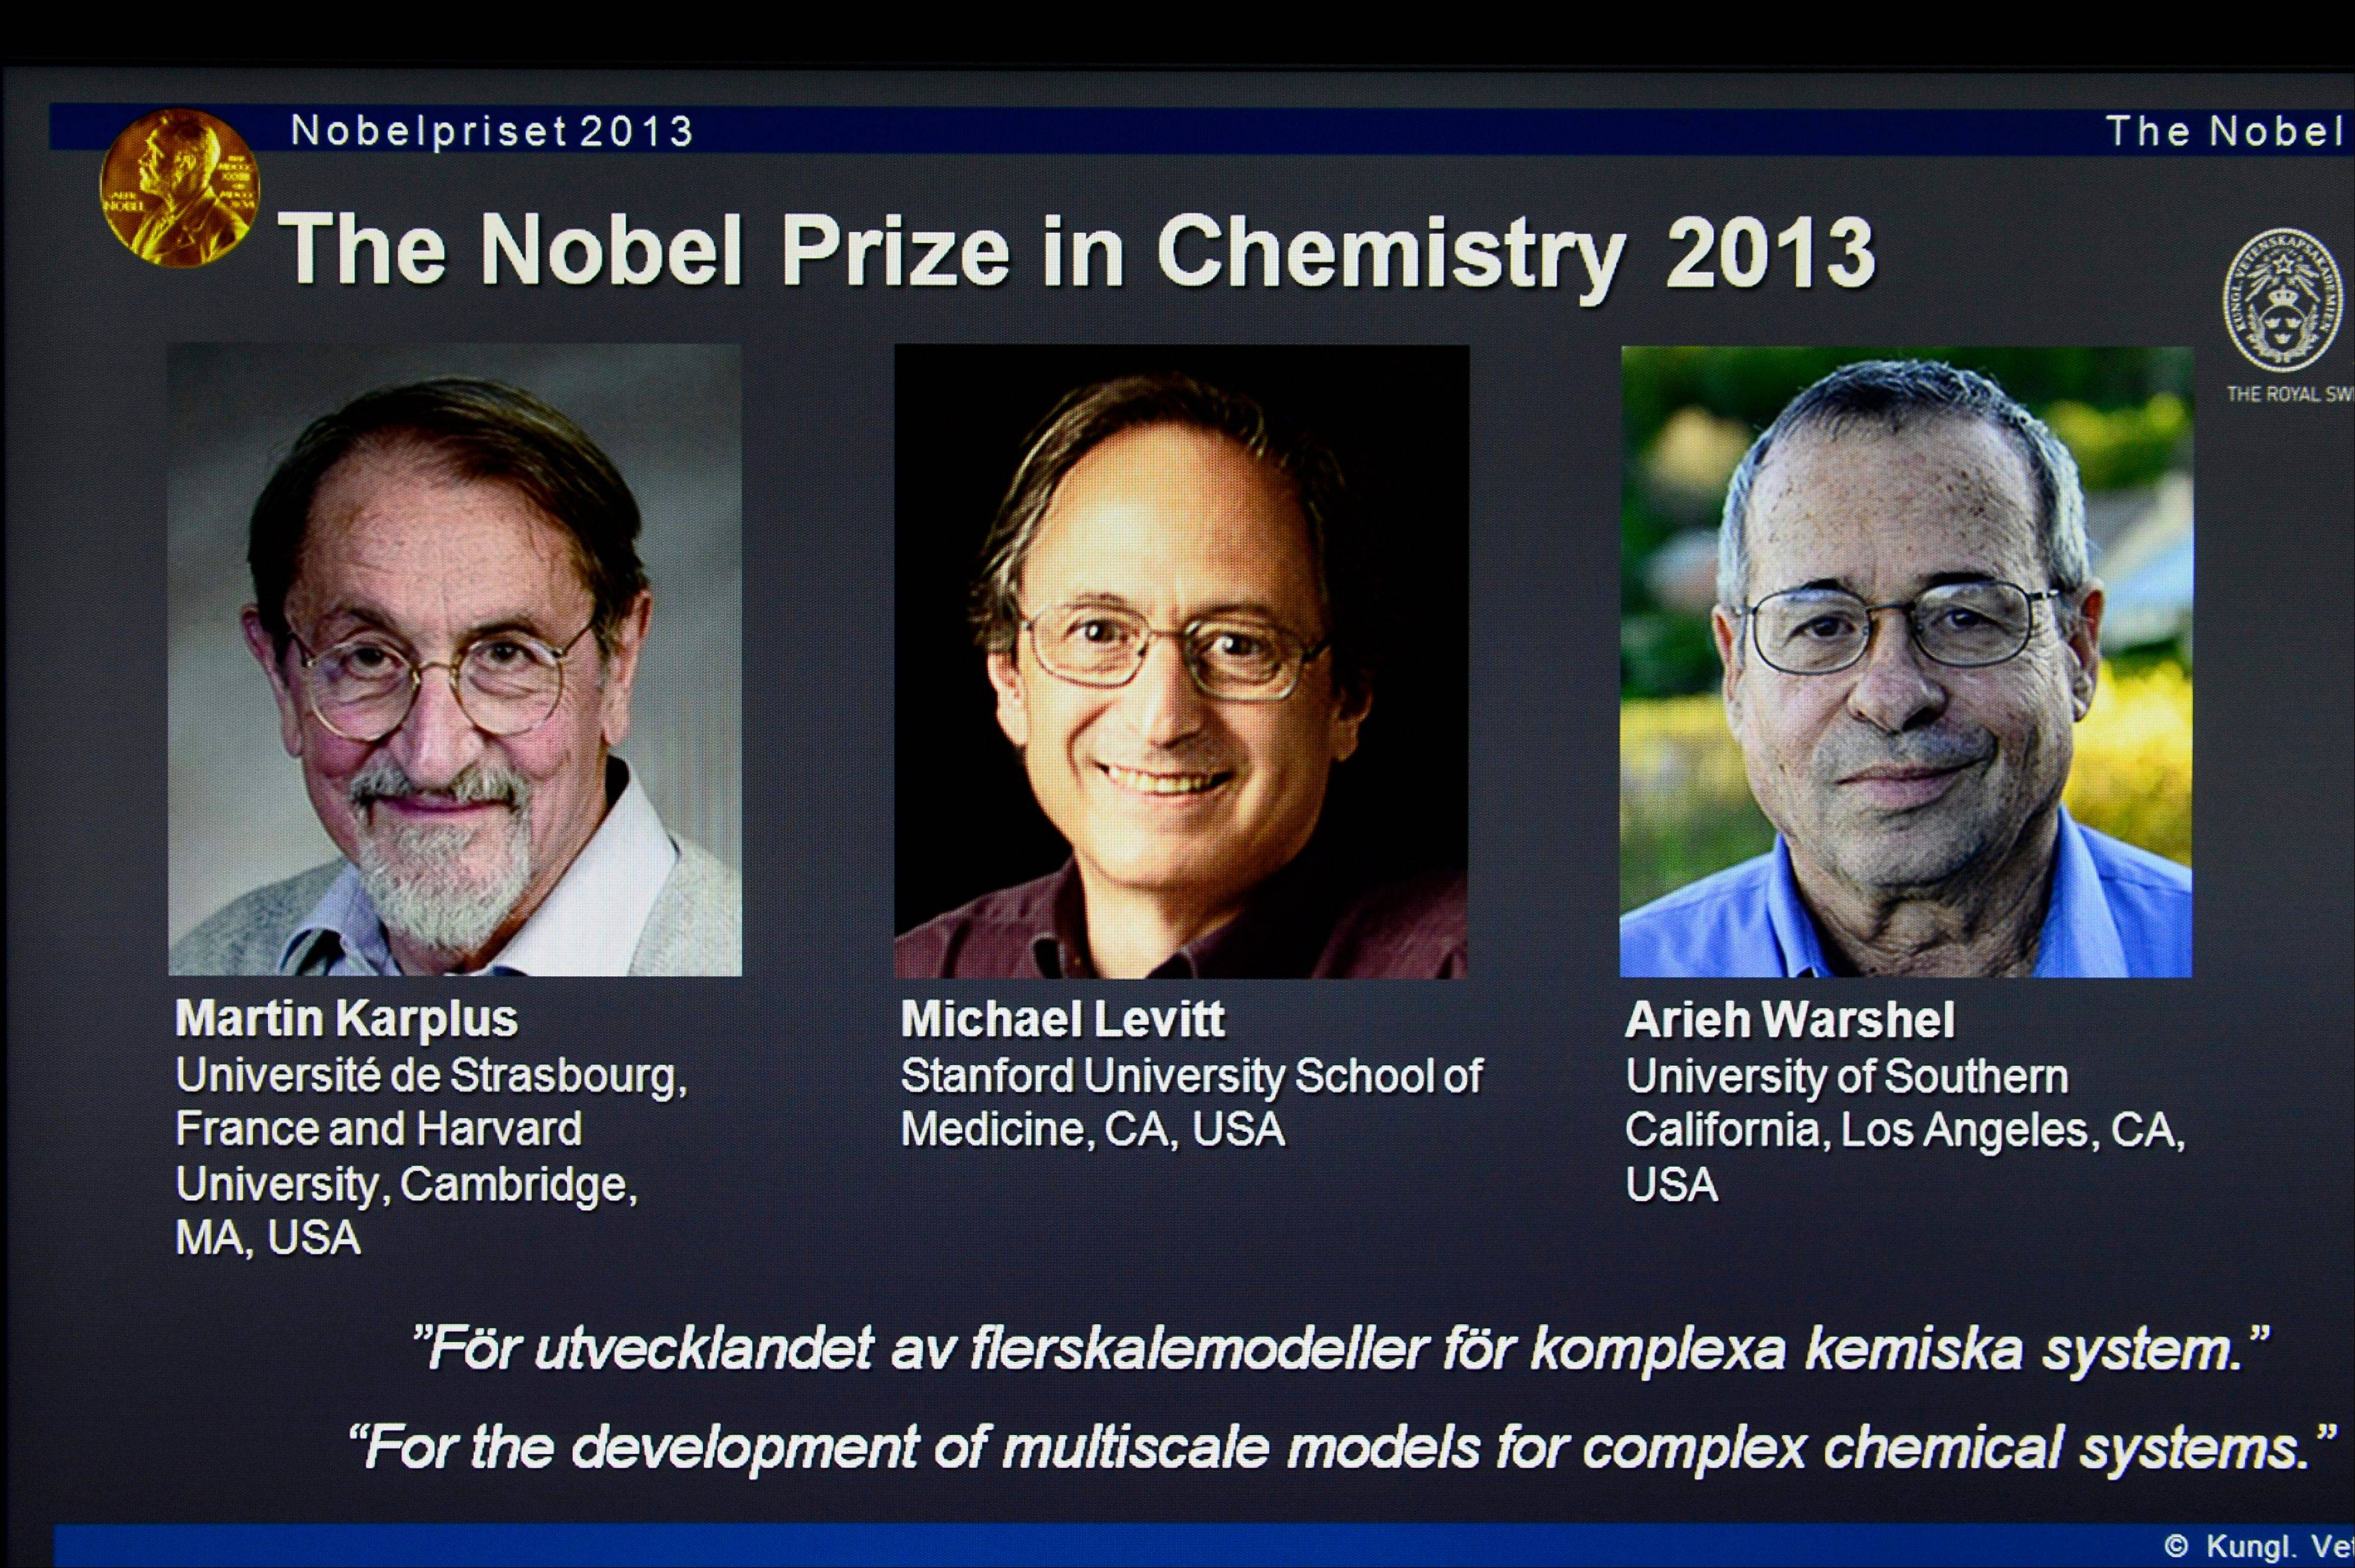 A webpage showing the laureates Martin Karplus, Michael Levitt and Arieh Warshel as winners of the 2013 Nobel Prize in chemistry, announced by the Royal Swedish Academy of Sciences in Stockholm. The prize was awarded for laying the foundation for the computer models used to understand and predict chemical processes.